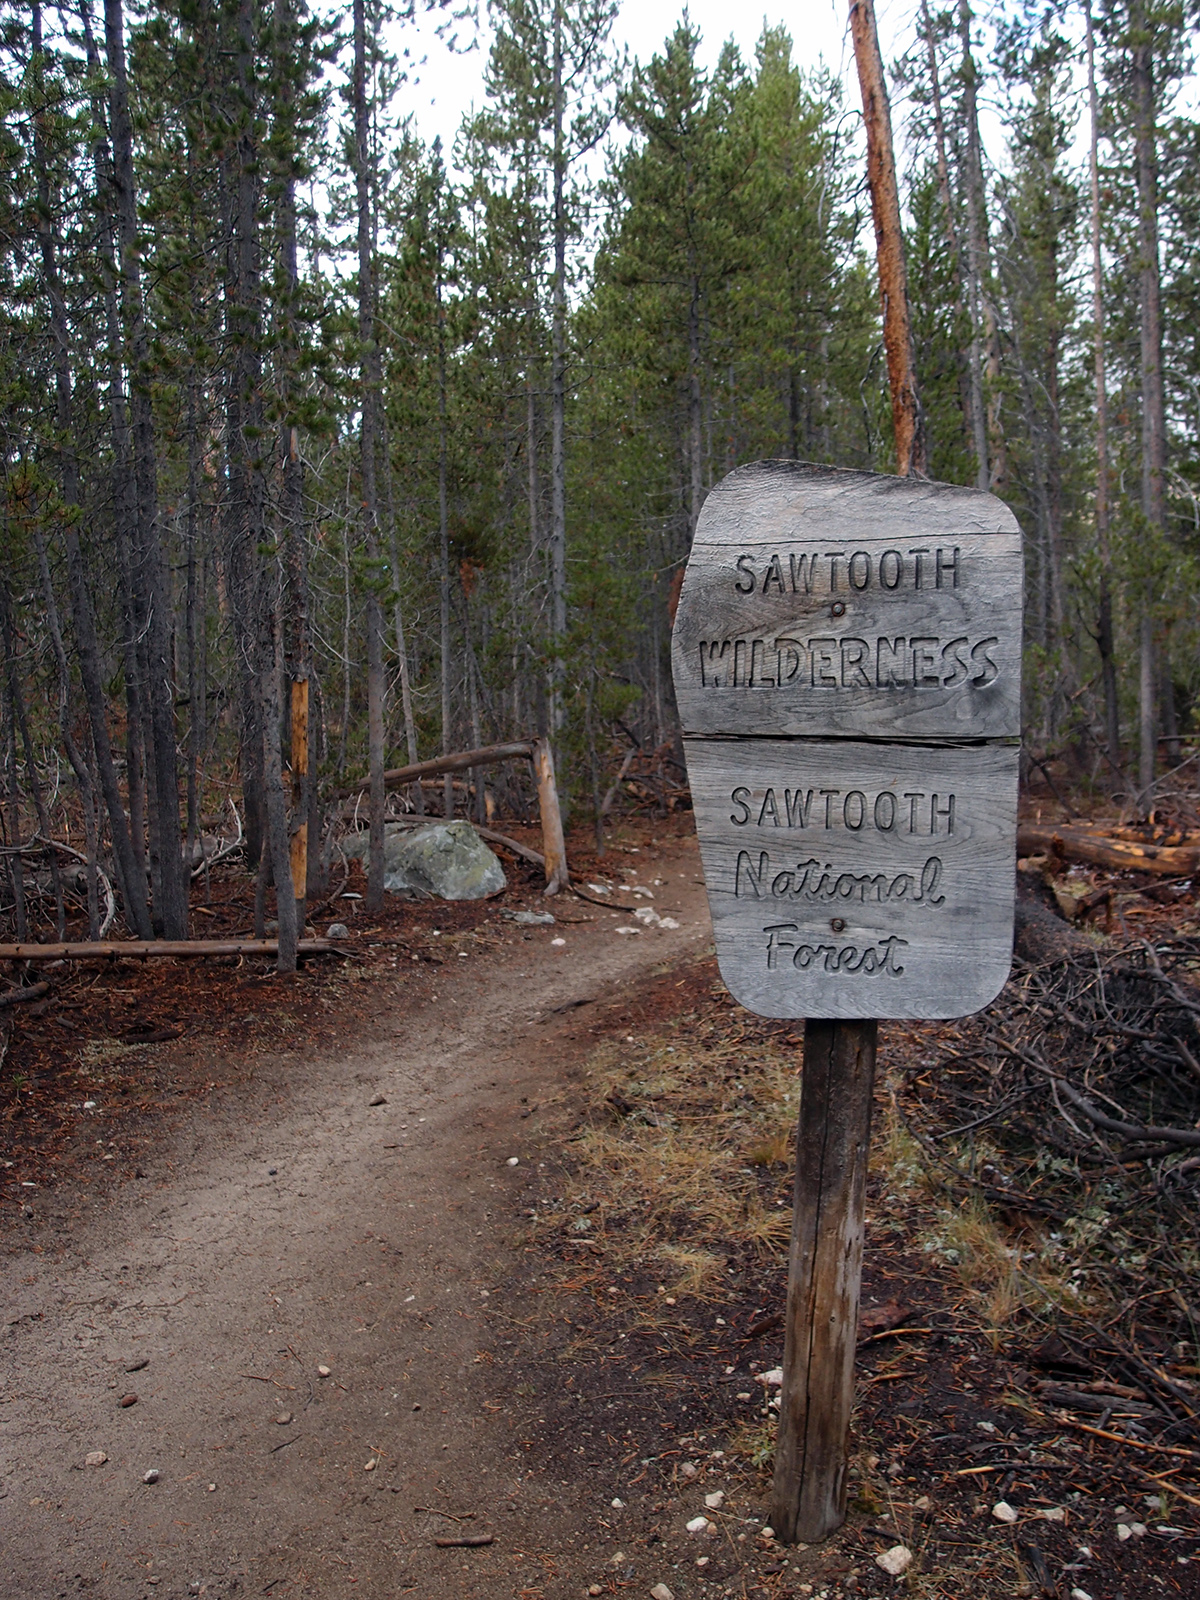 Trailhead map with our route drawn in